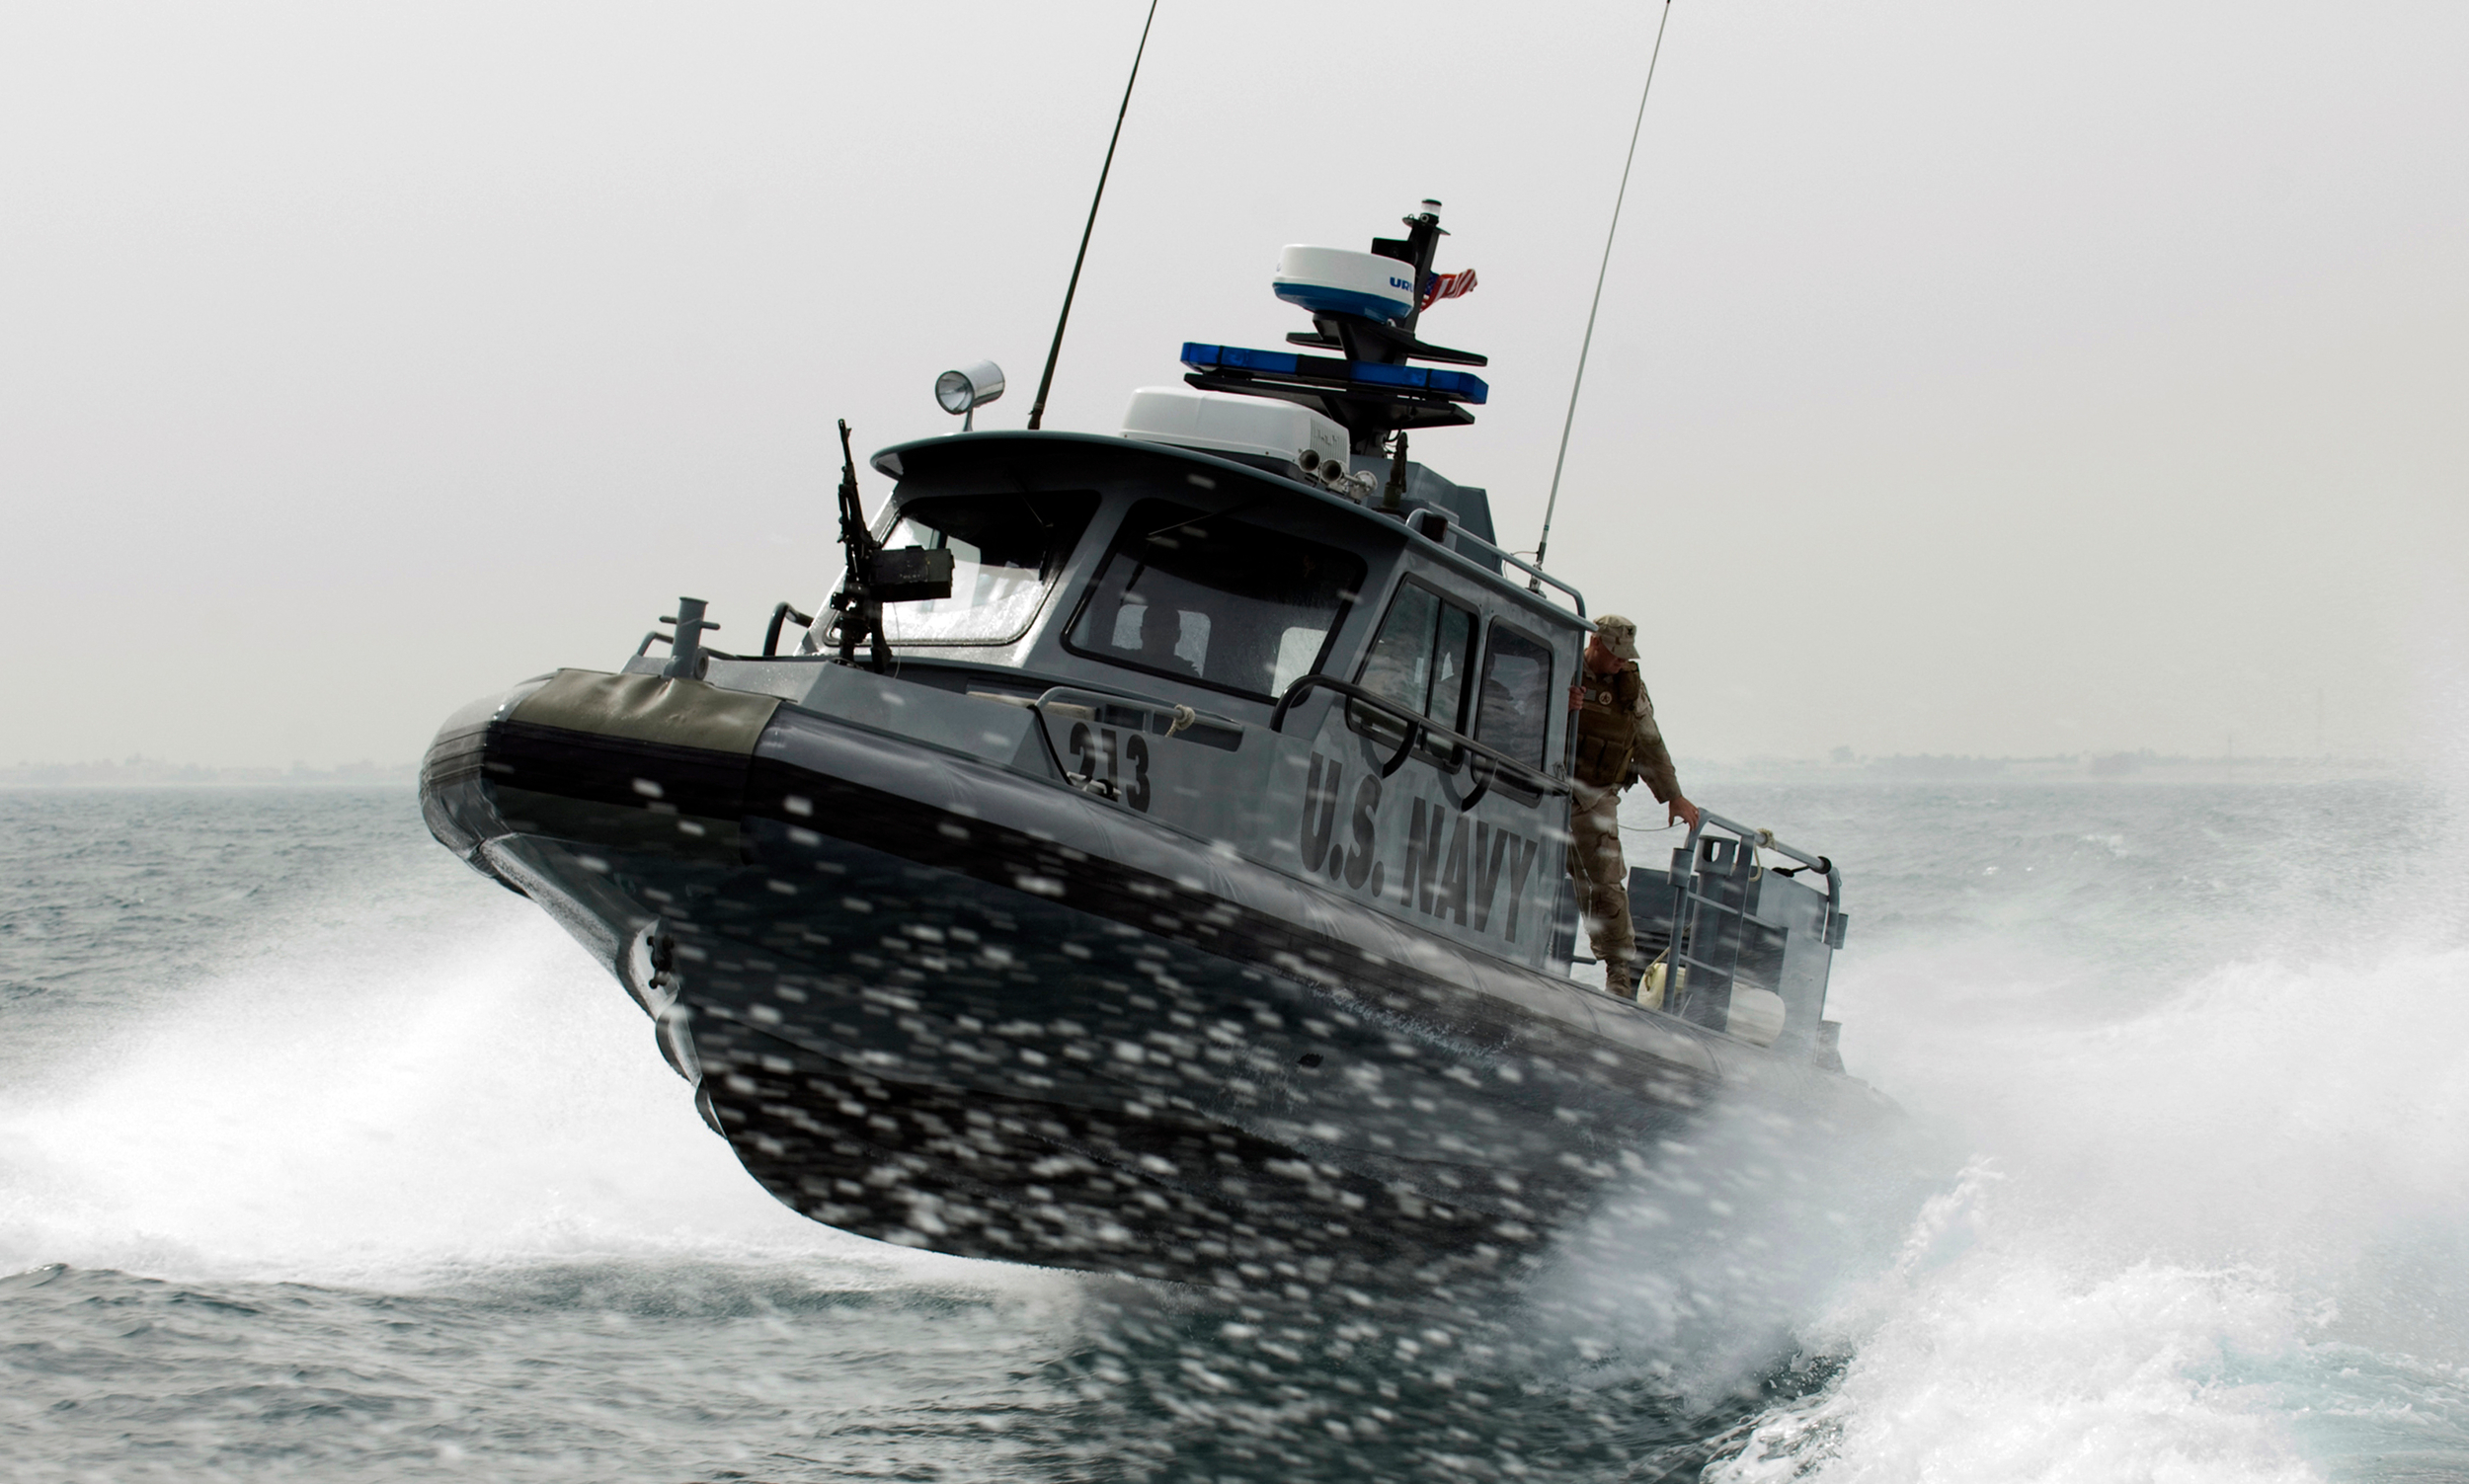 US_Navy_090210-N-9671T-144_A_port_security_boat_patrols_the_waters_near_Kuwait_Naval_Base.jpg